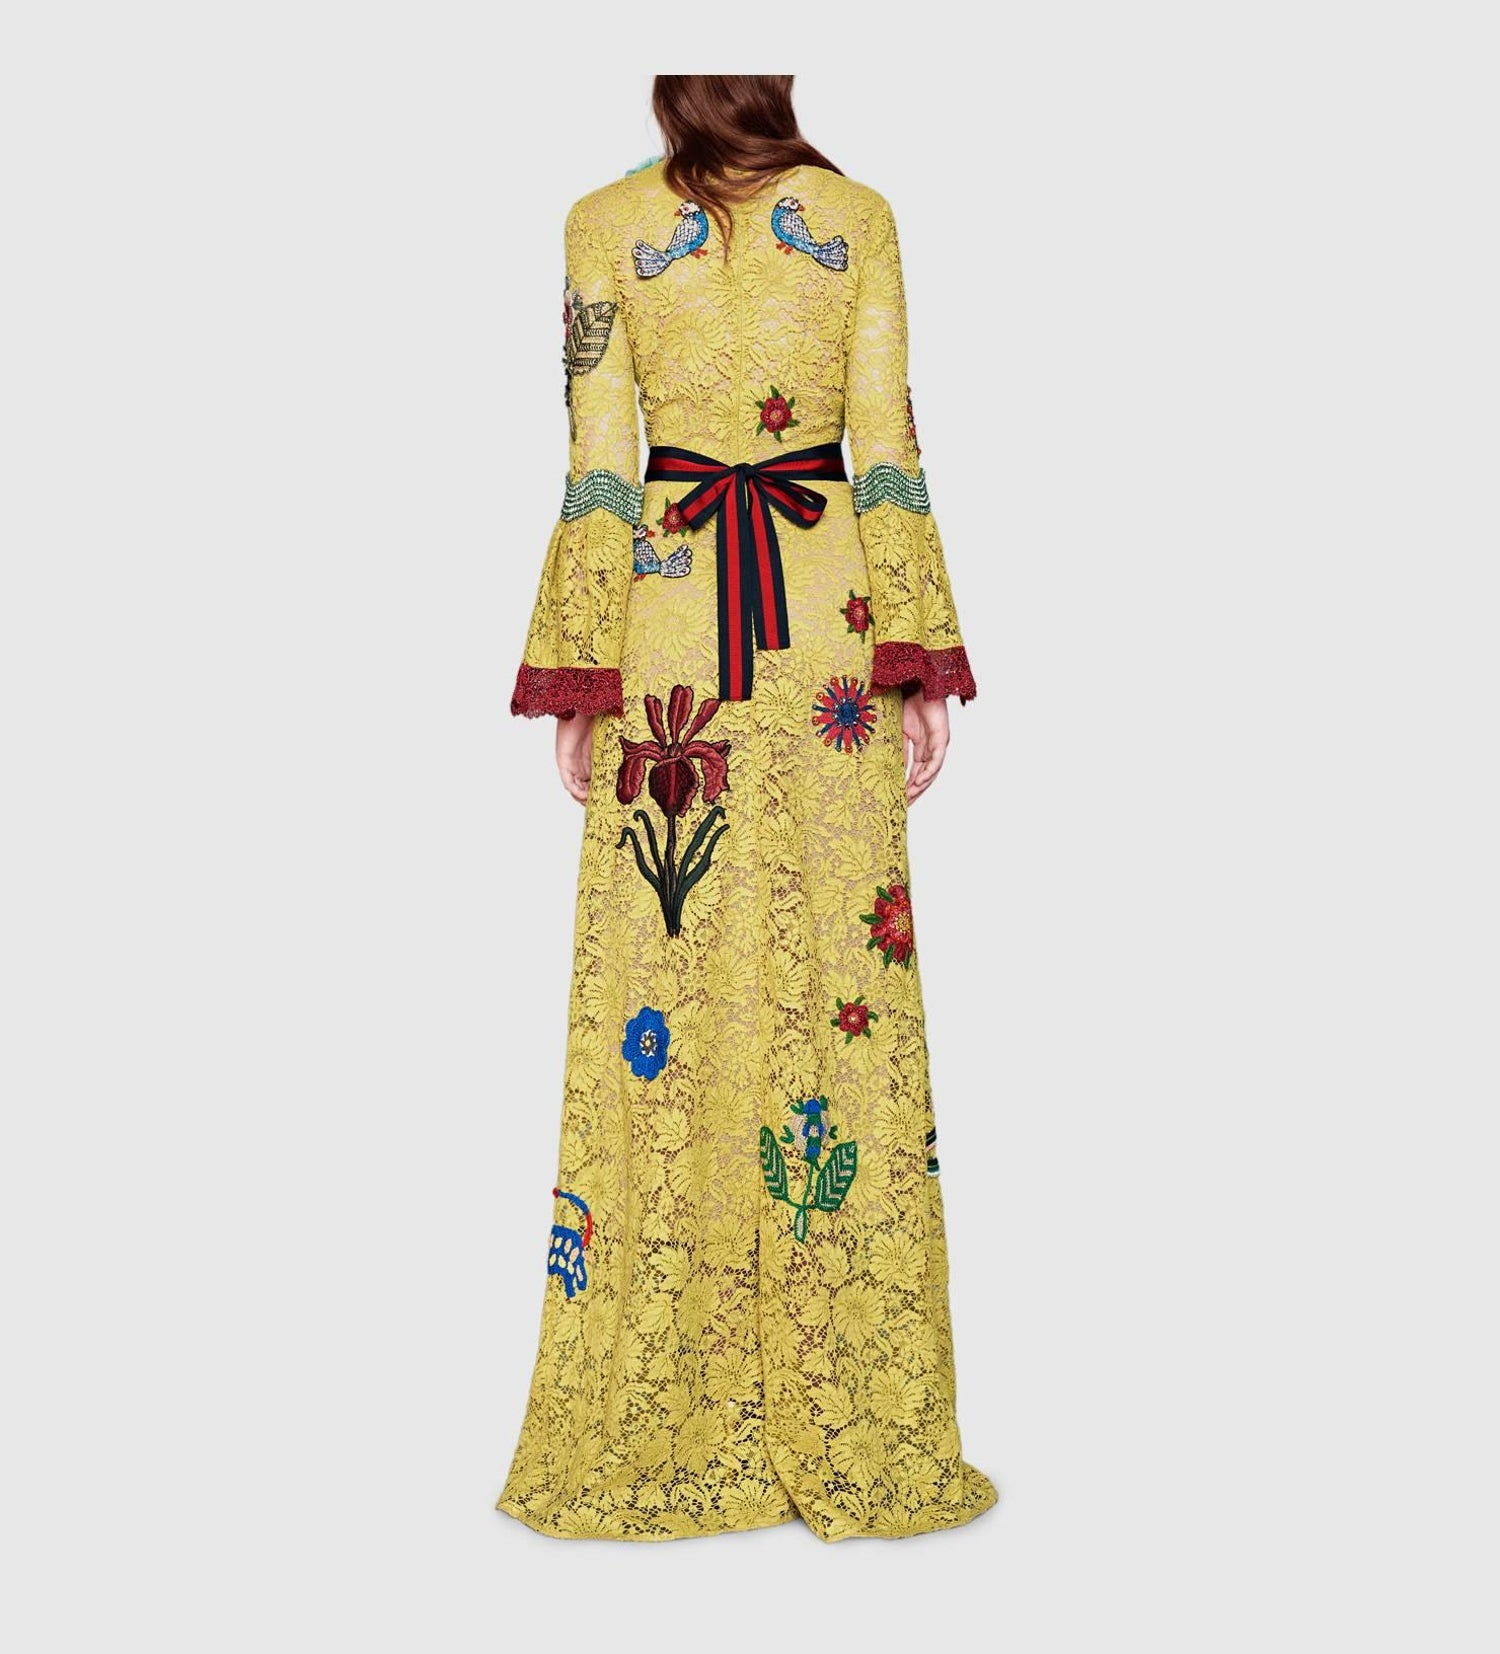 Gucci Yellow Lace Embroidered Runway Dress Gown Cruise 2016 Jfashion Korean Style Chiffon Spandek Wing Blouse Retail 21000 For Sale At 1stdibs